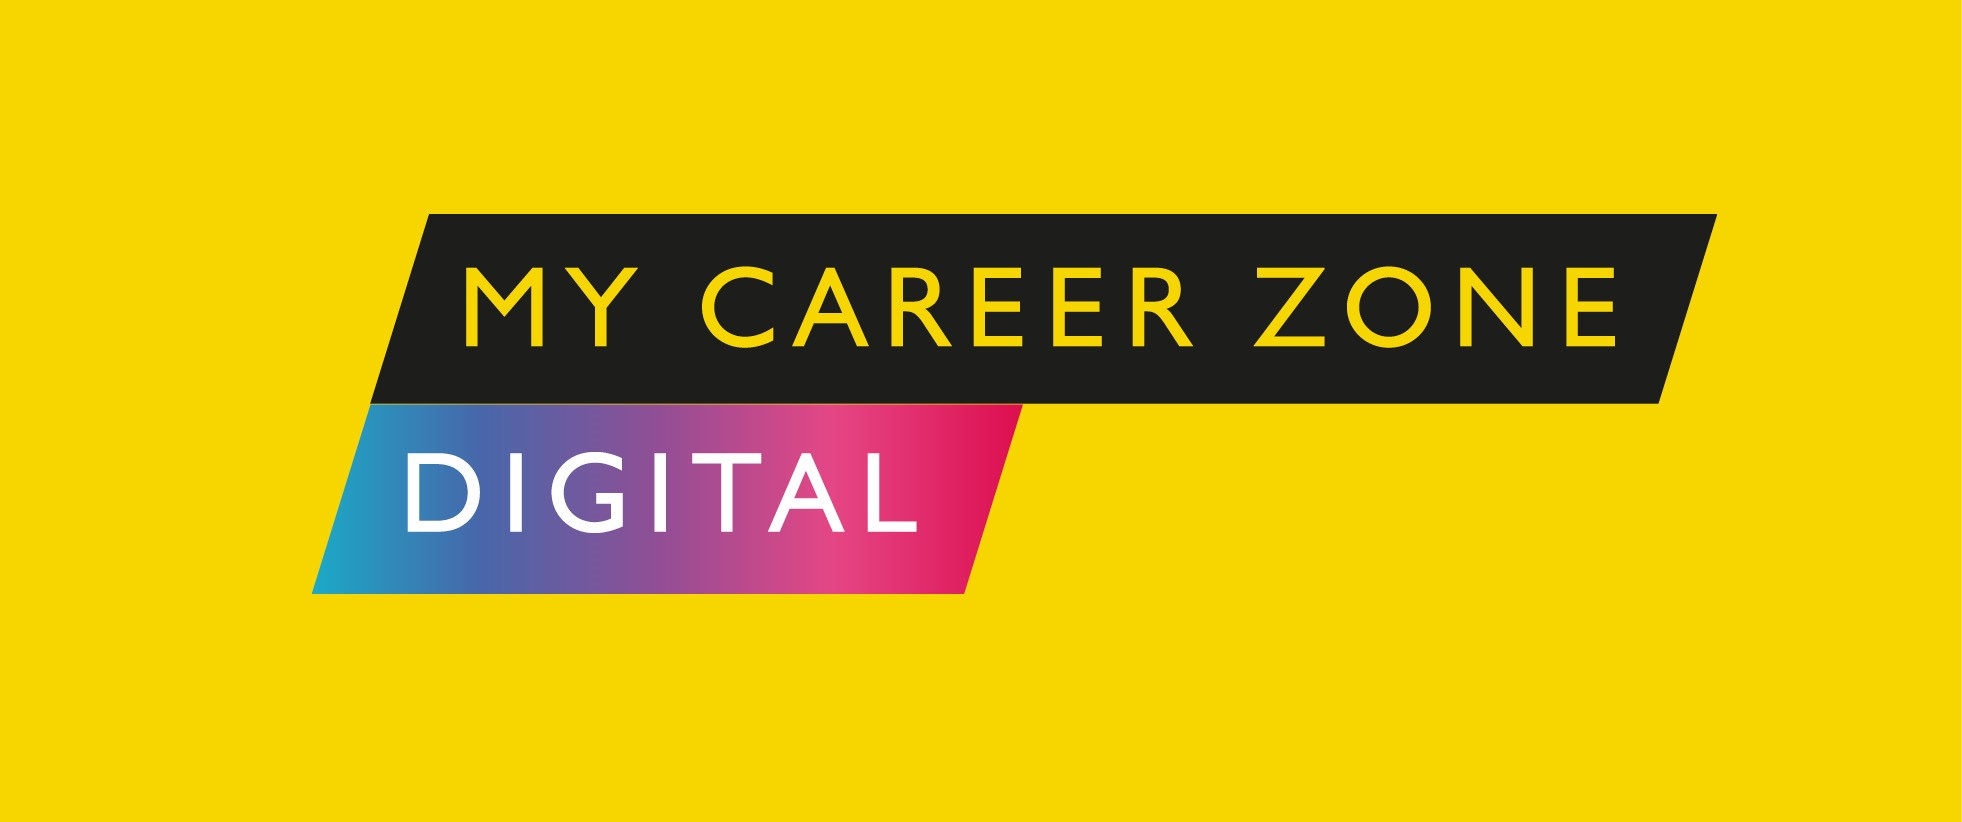 My Career Zone Digital